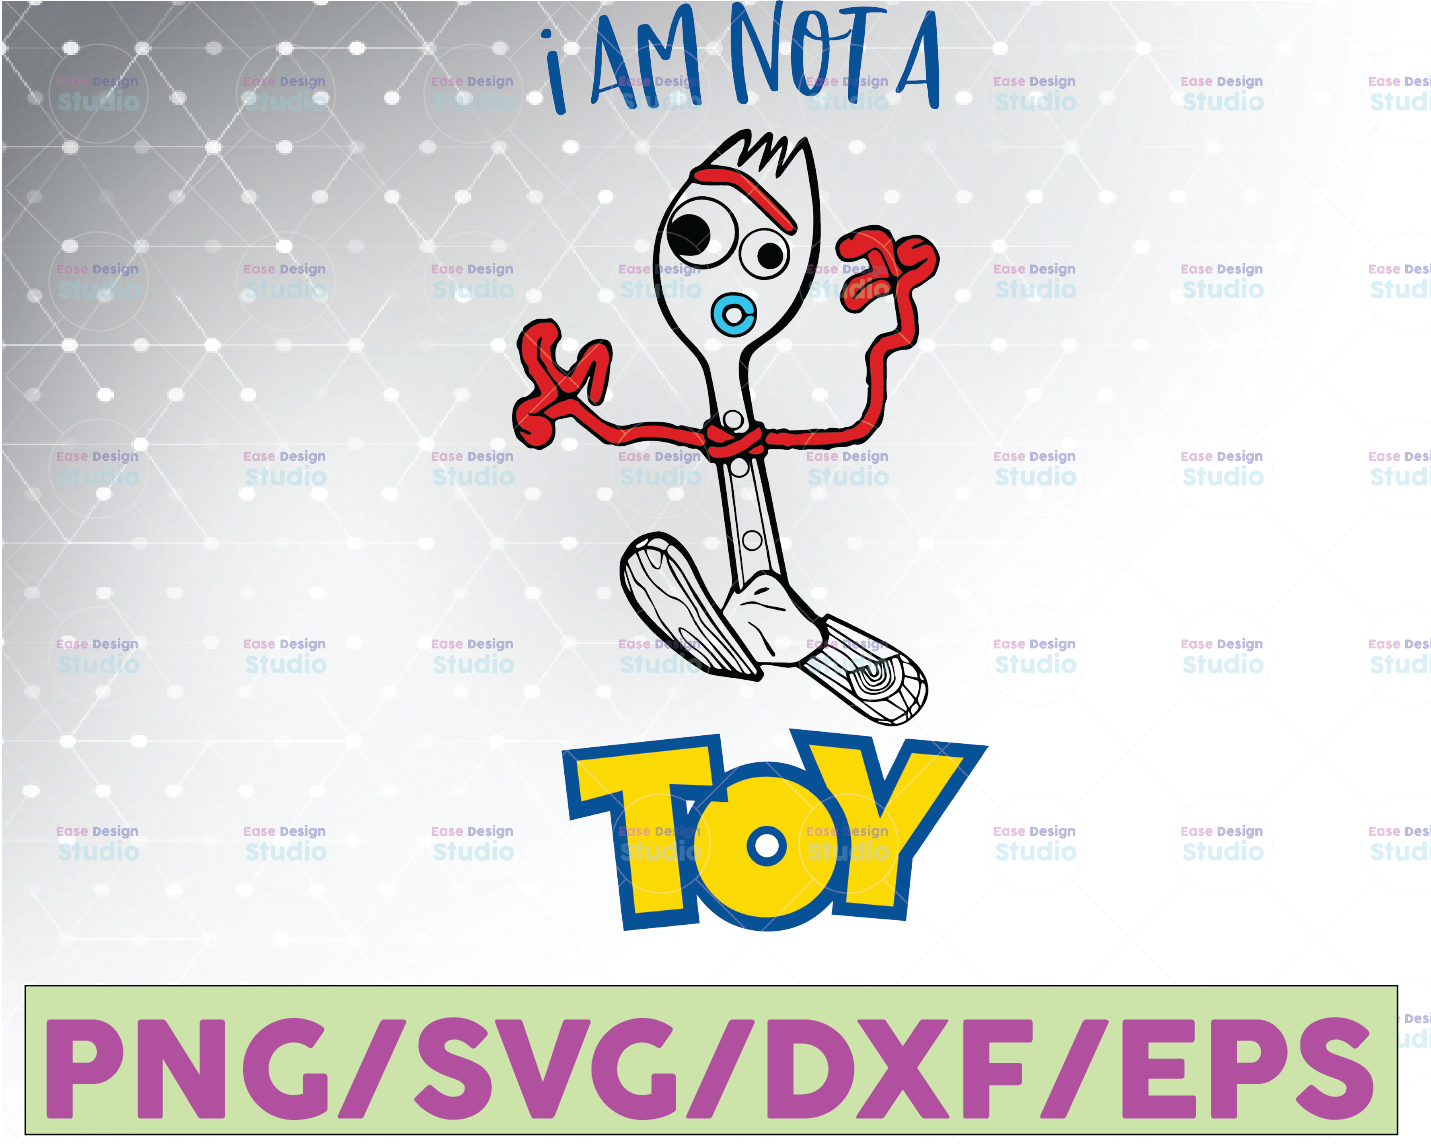 Cricut jpg Shirt Design Silhouette Print File svg dxf eps Oh Boy Now I/'m Four Digital Download Toy Story Theme Cut File png